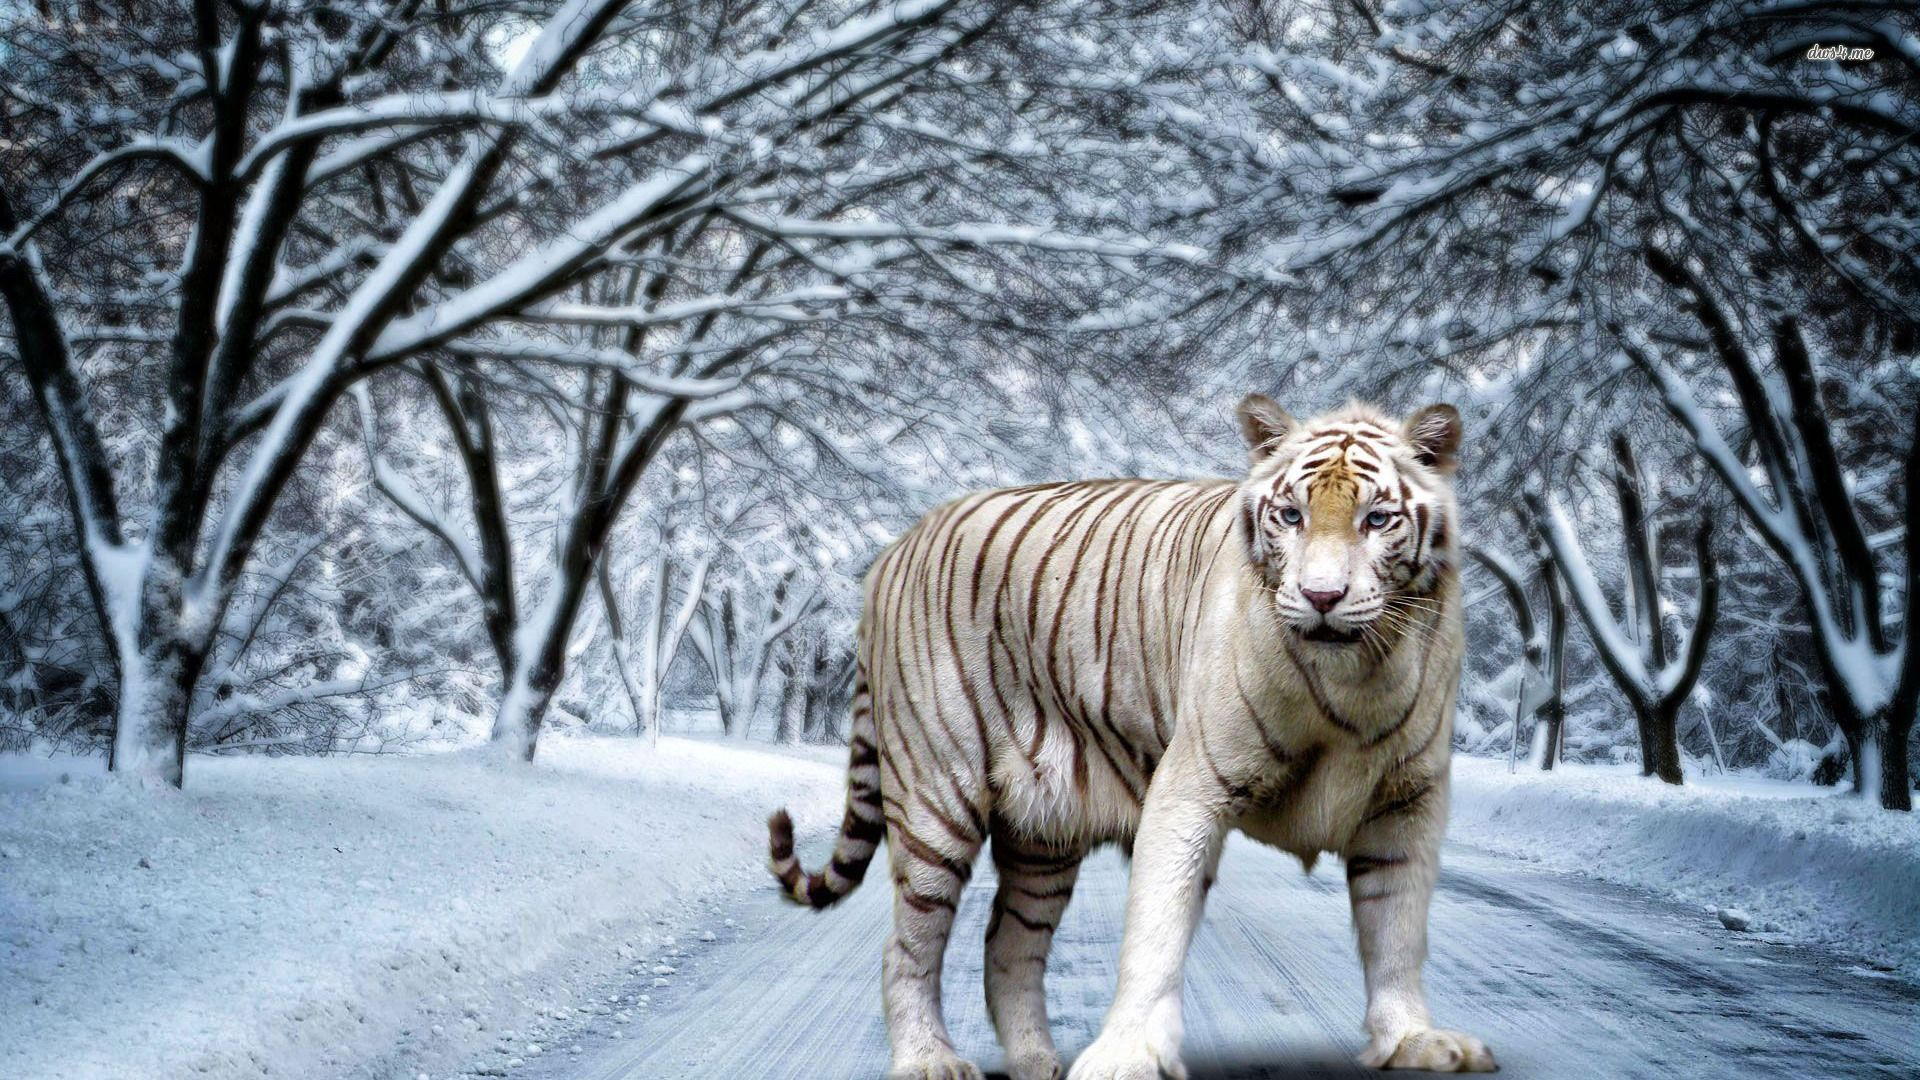 White Tiger 3d Wallpaper Full Hd Hd Desktop Katzen Desktop